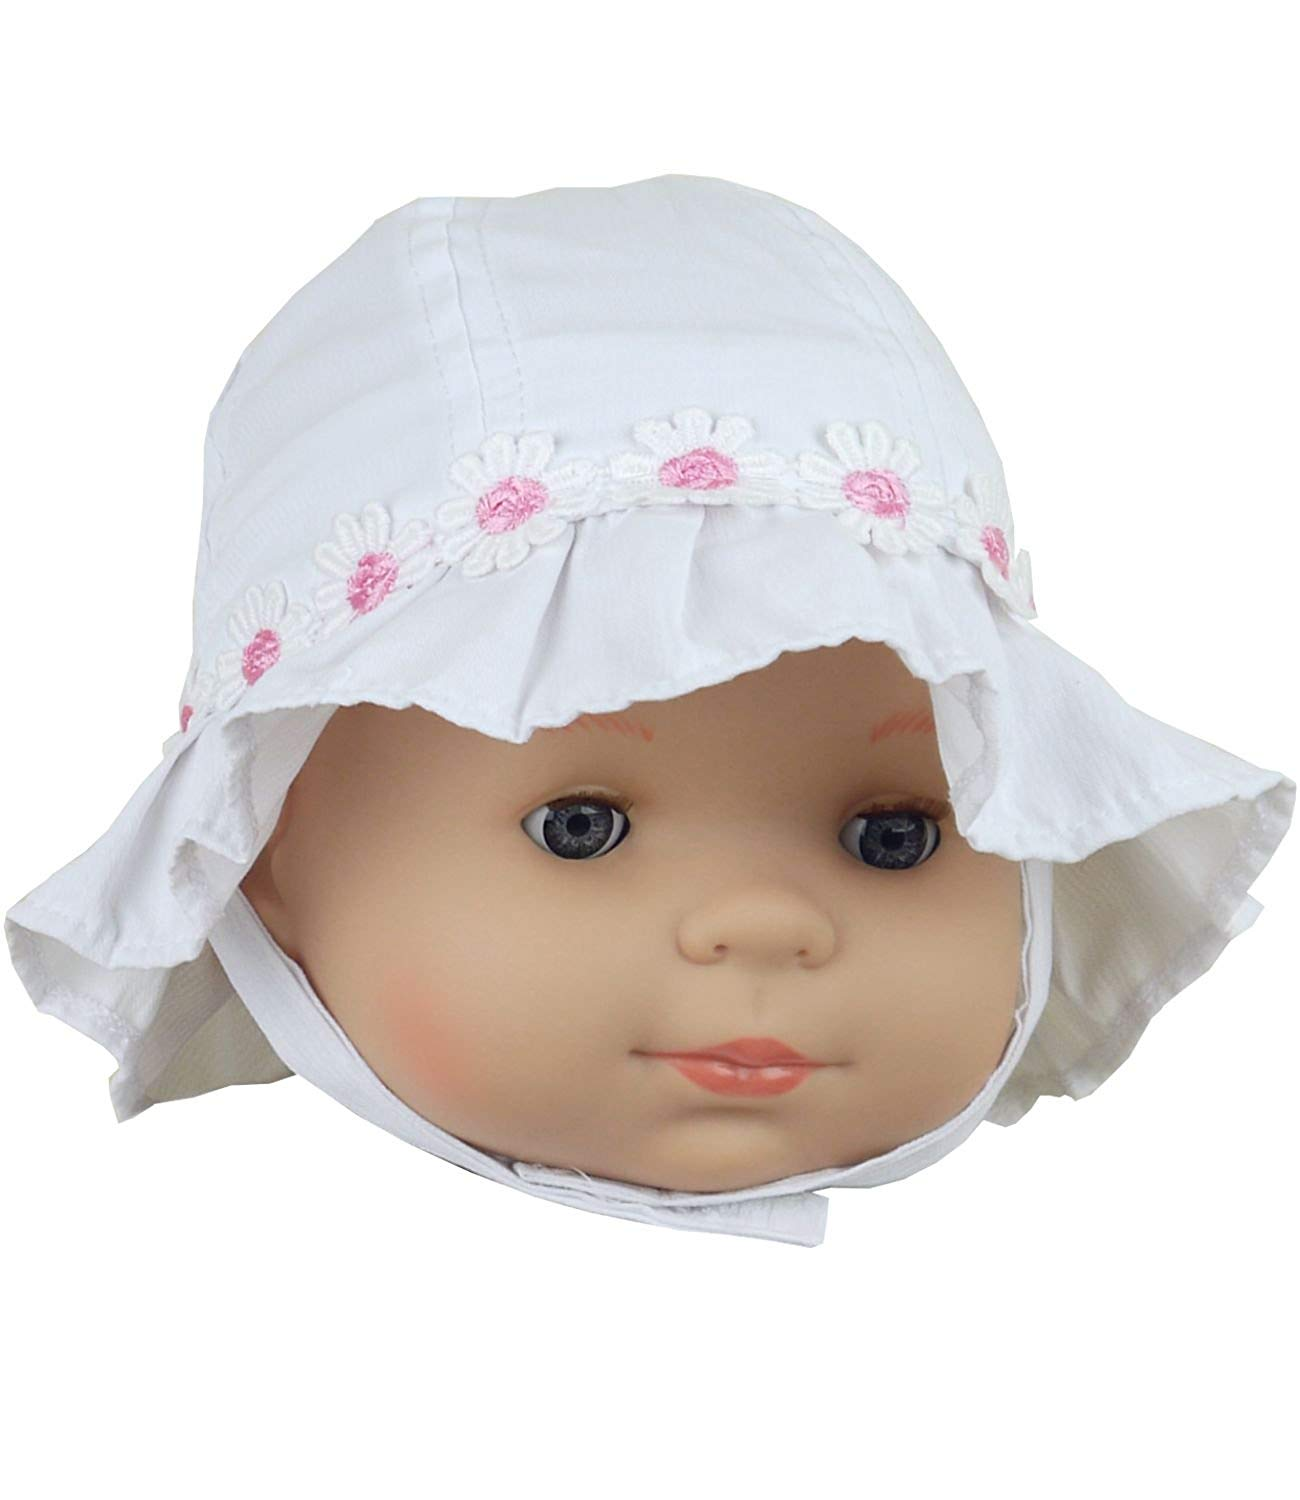 BabyPrem Baby Bucket Hat Girl's Daisy Chain Summer Cotton Clothes Pink White